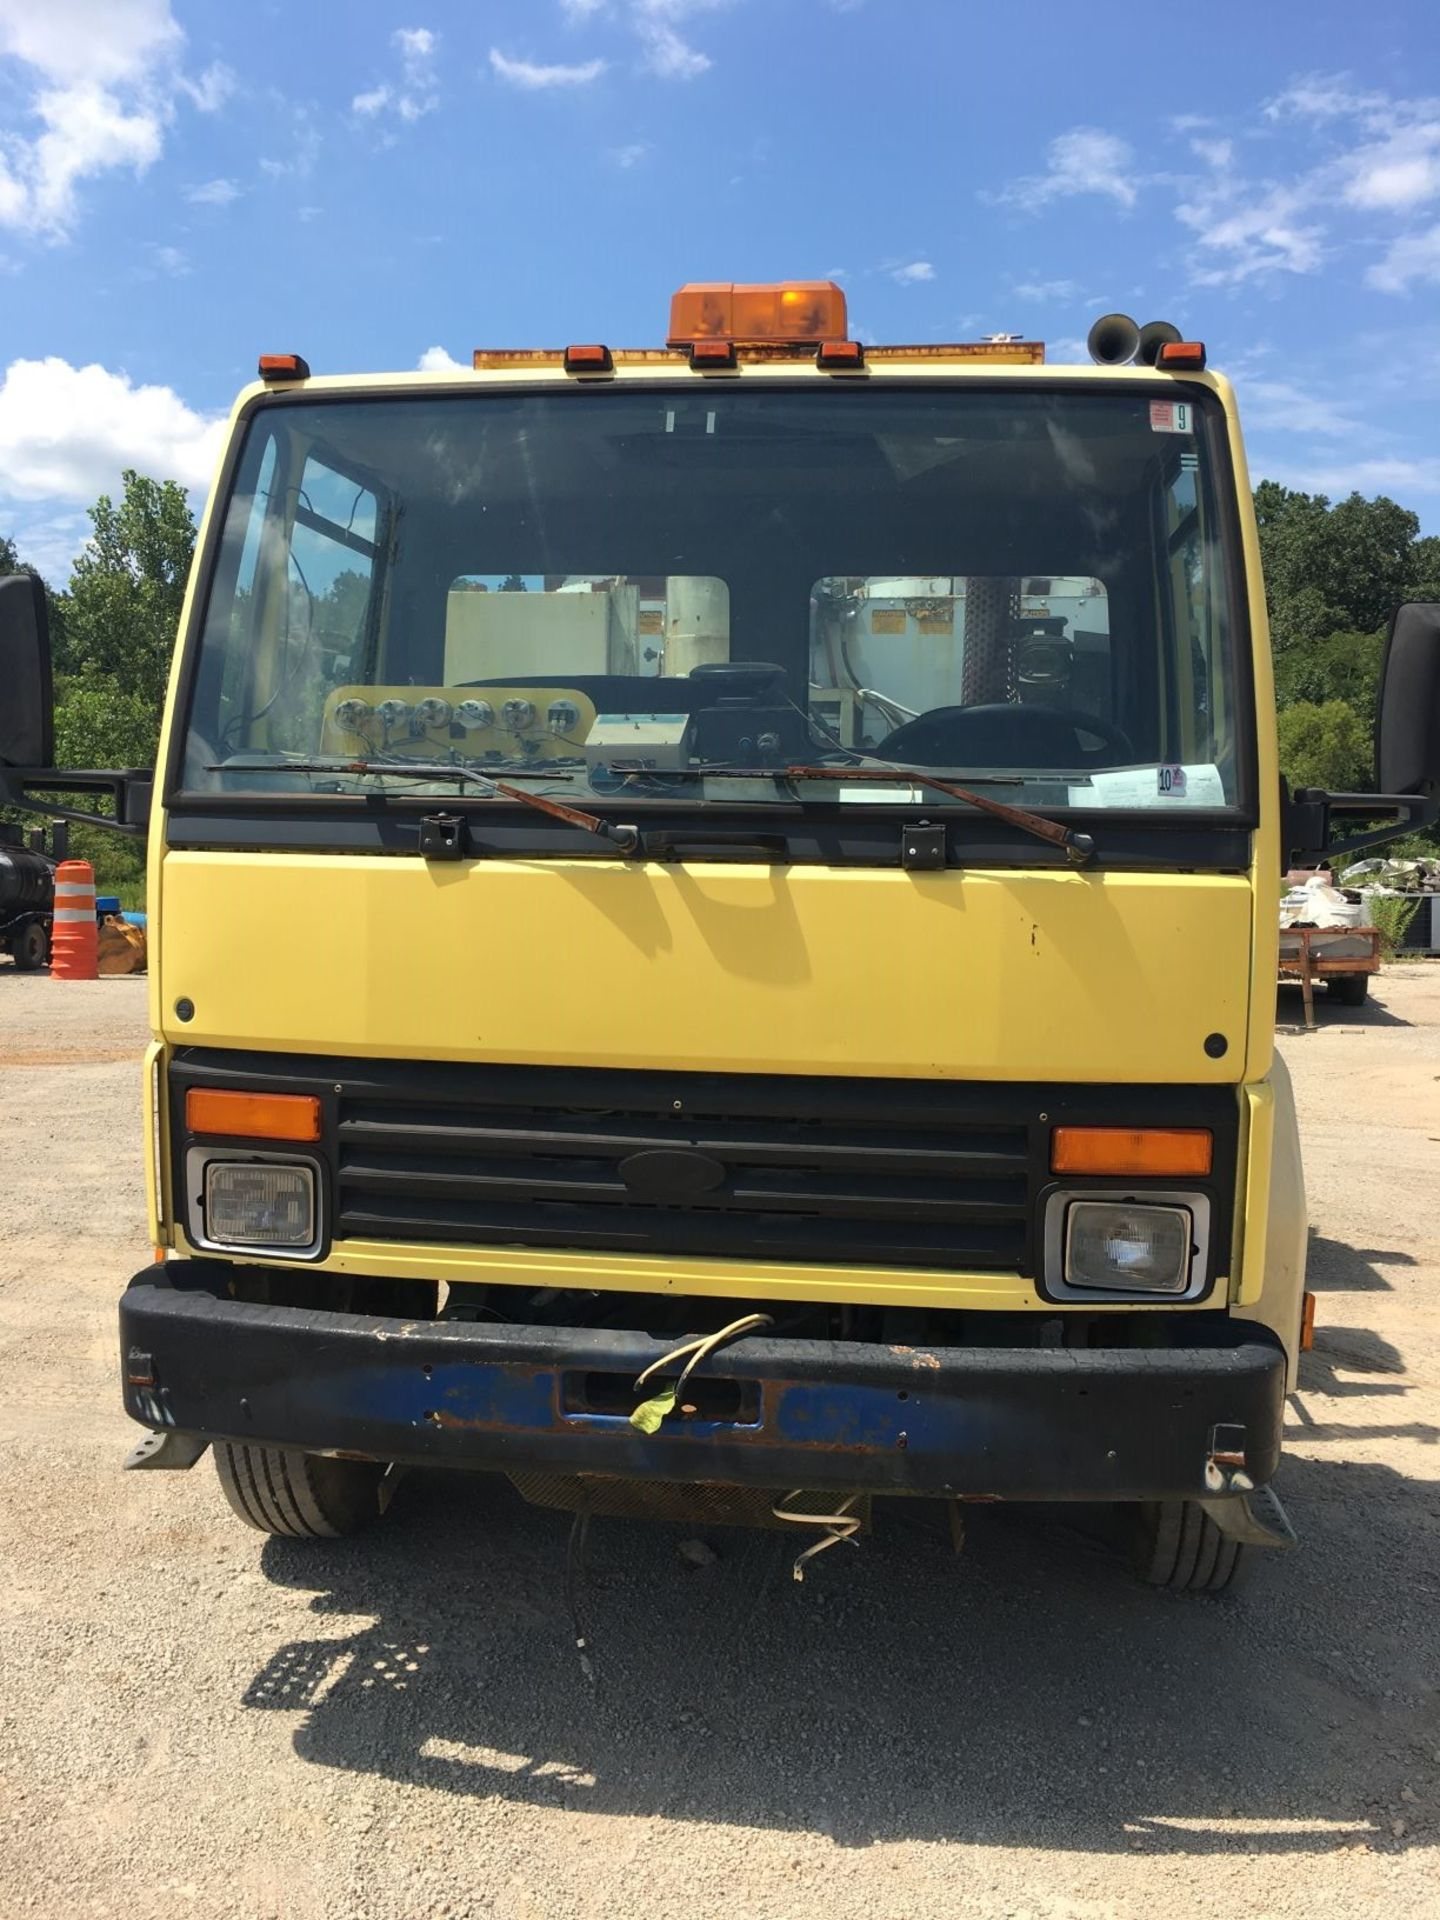 Lot 7 - 2003 Ford 7000 Cargo Truck w/ (2) Mark Rite Lines Melters